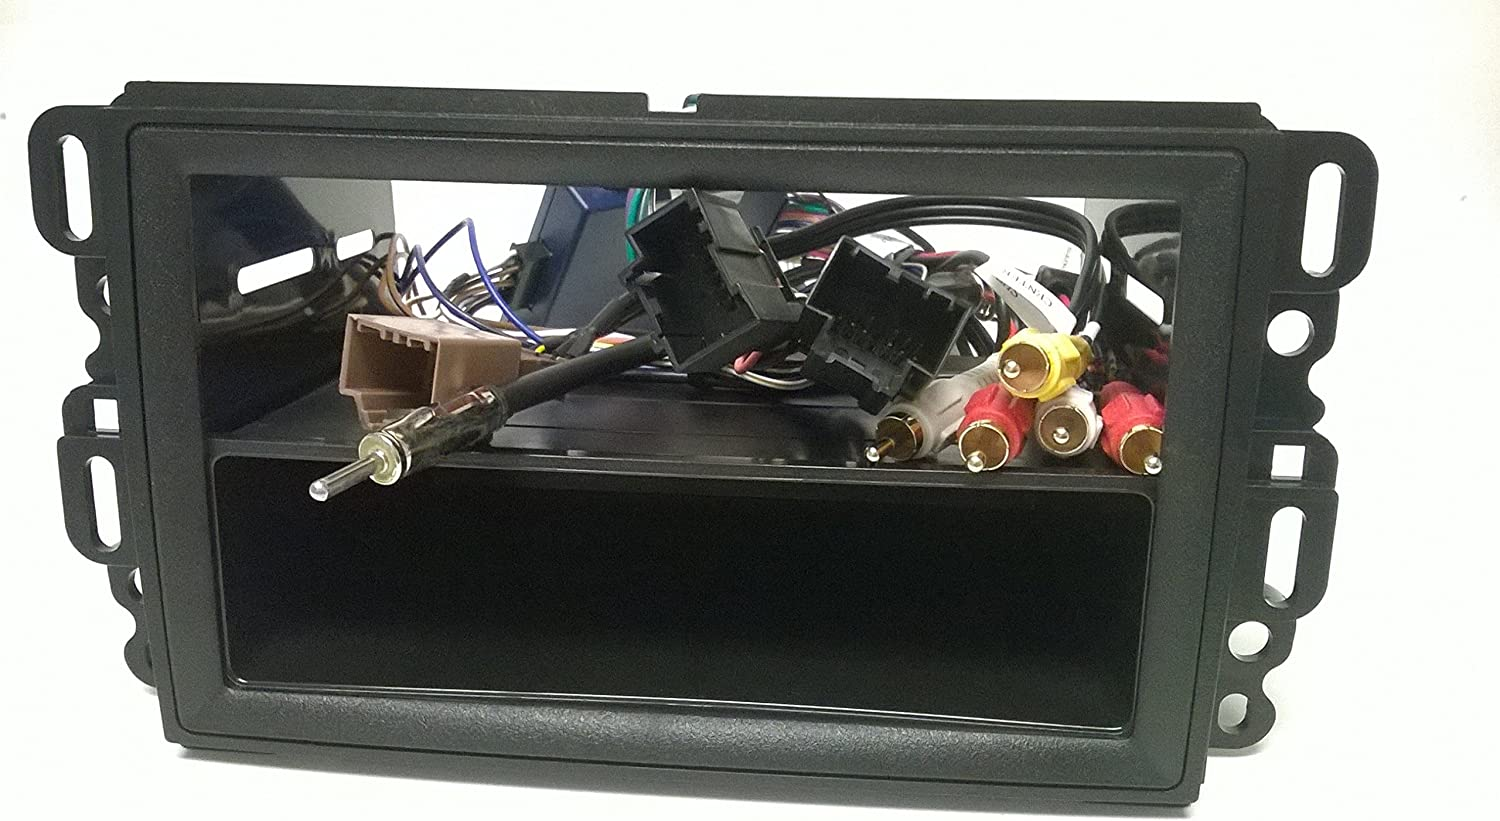 2006, 2007, 2008, 2009, 2010, 2011 Lucerne Dash kit and Wire Harness for Installing a New Double Din Radio into a Buick Enclave 08, 09, 10, 11, 12 ,